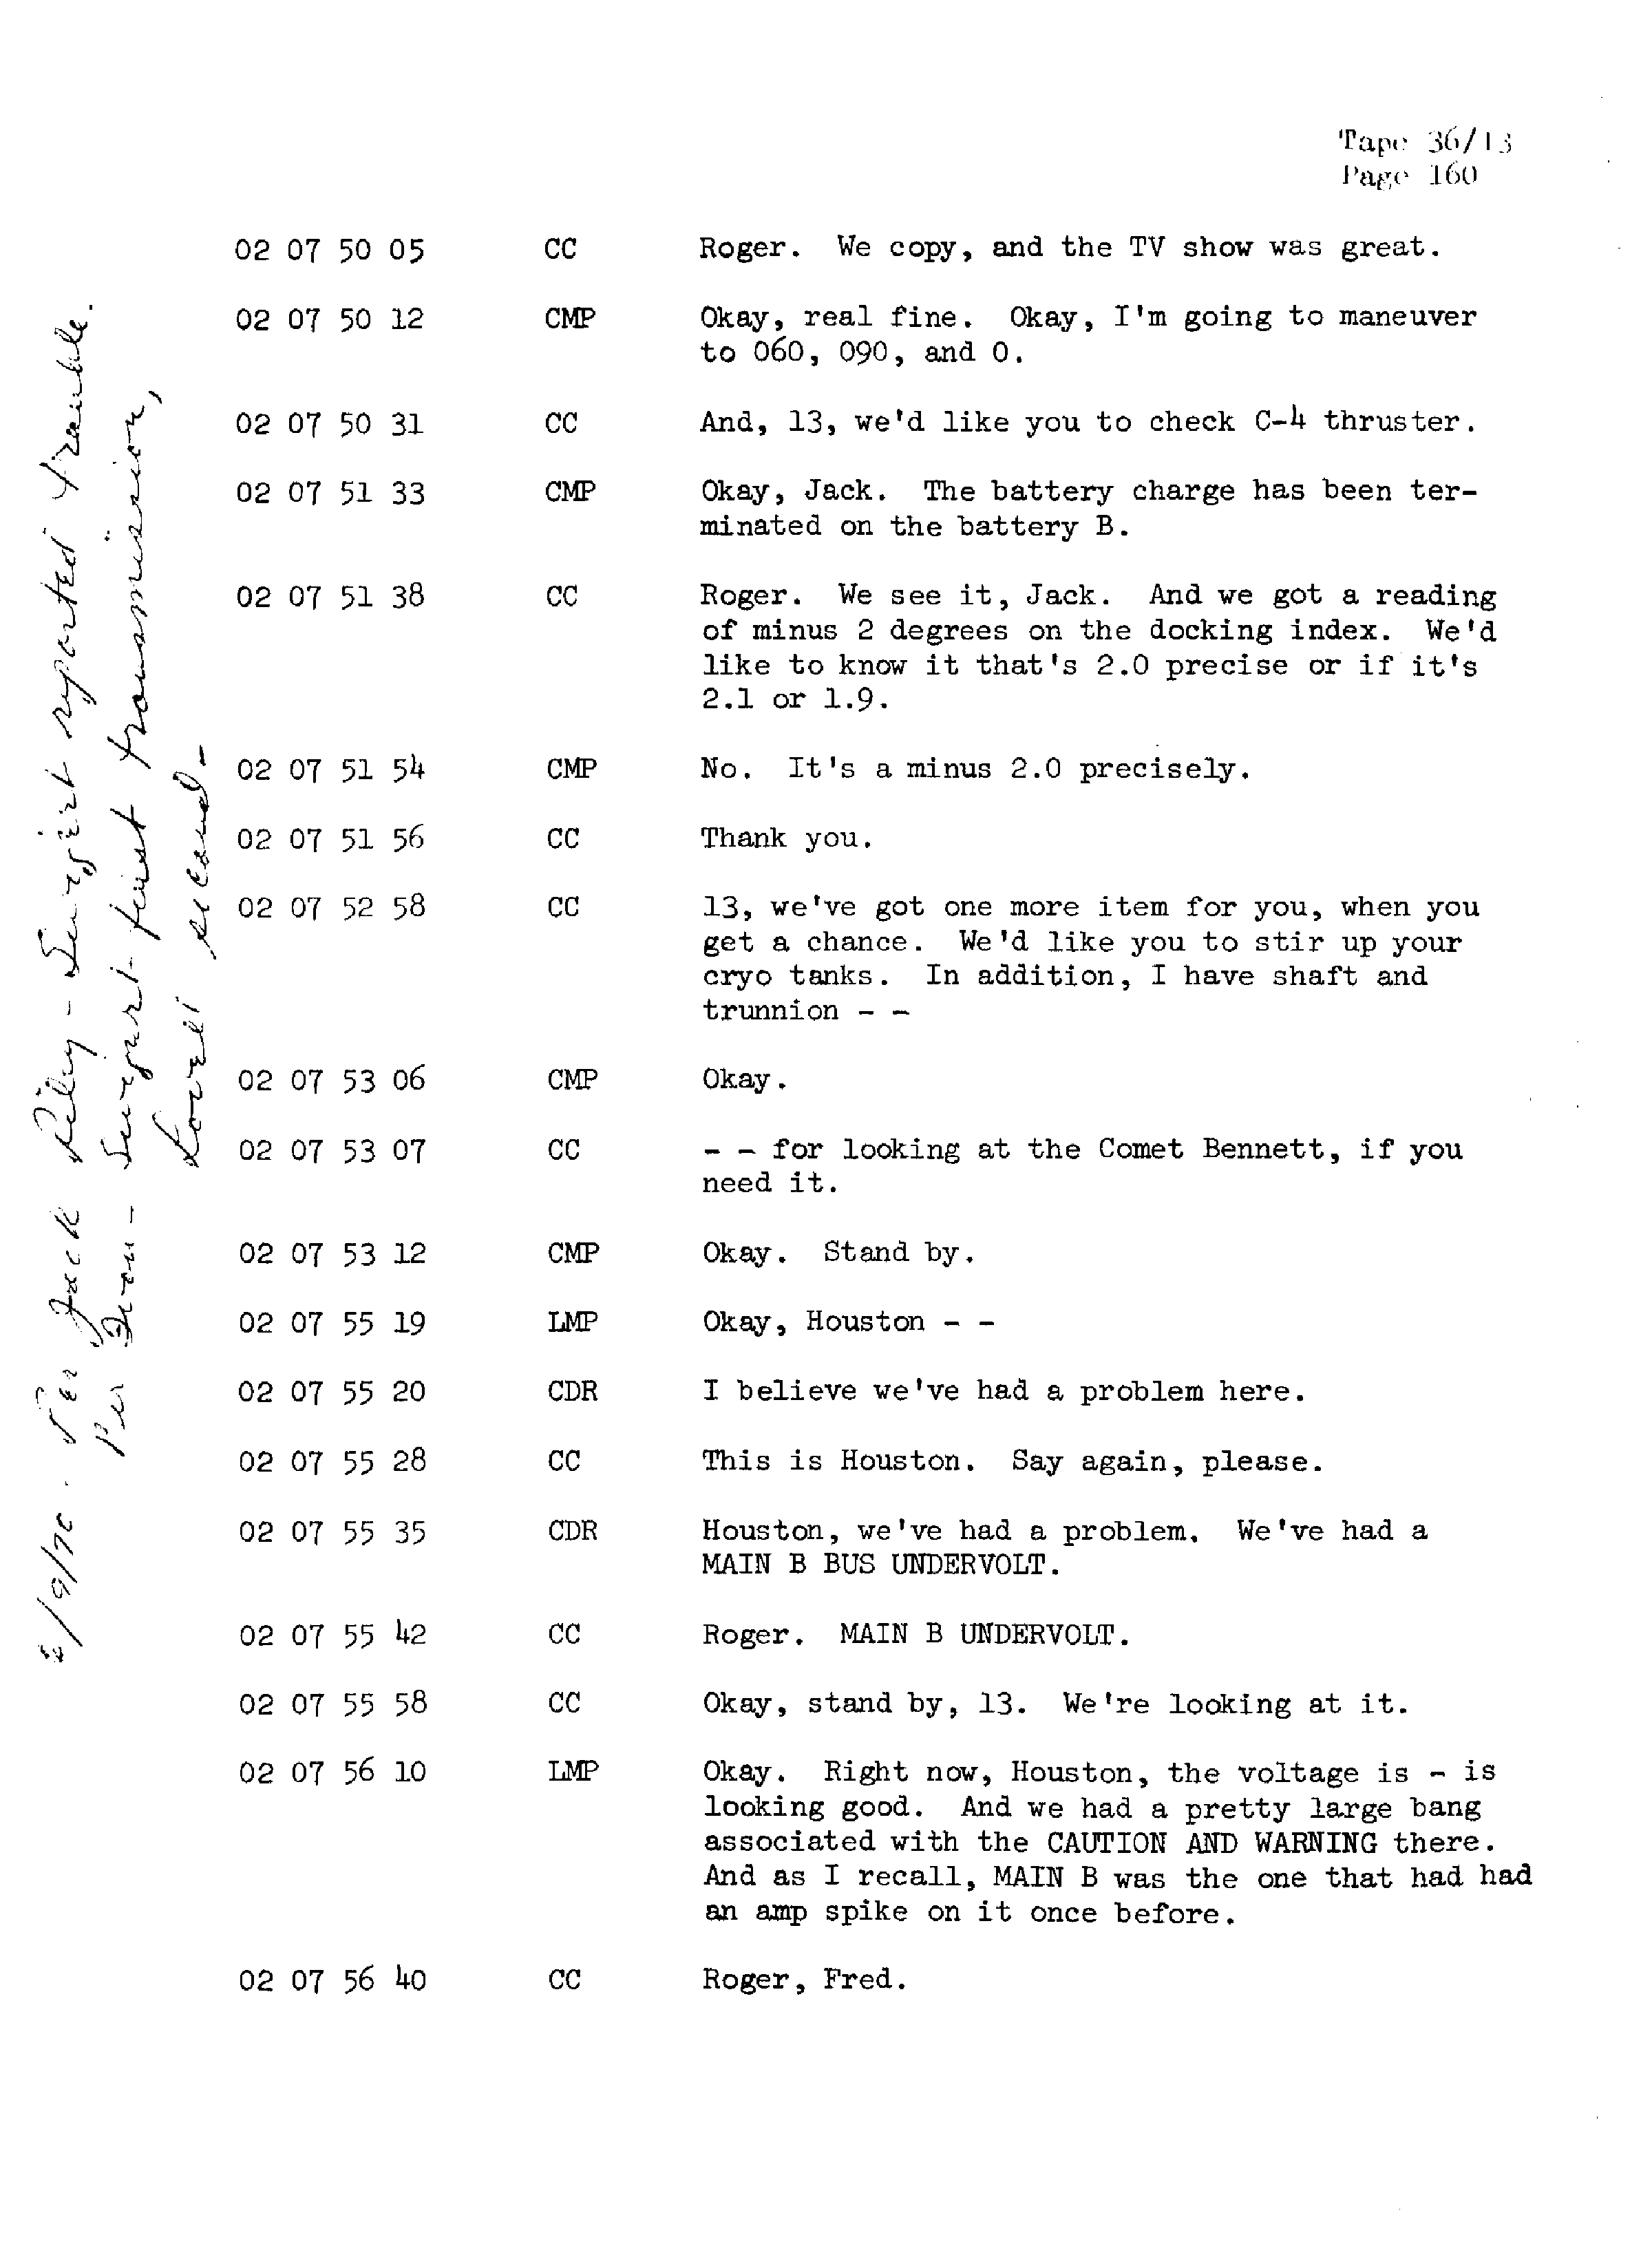 Page 167 of Apollo 13's original transcript